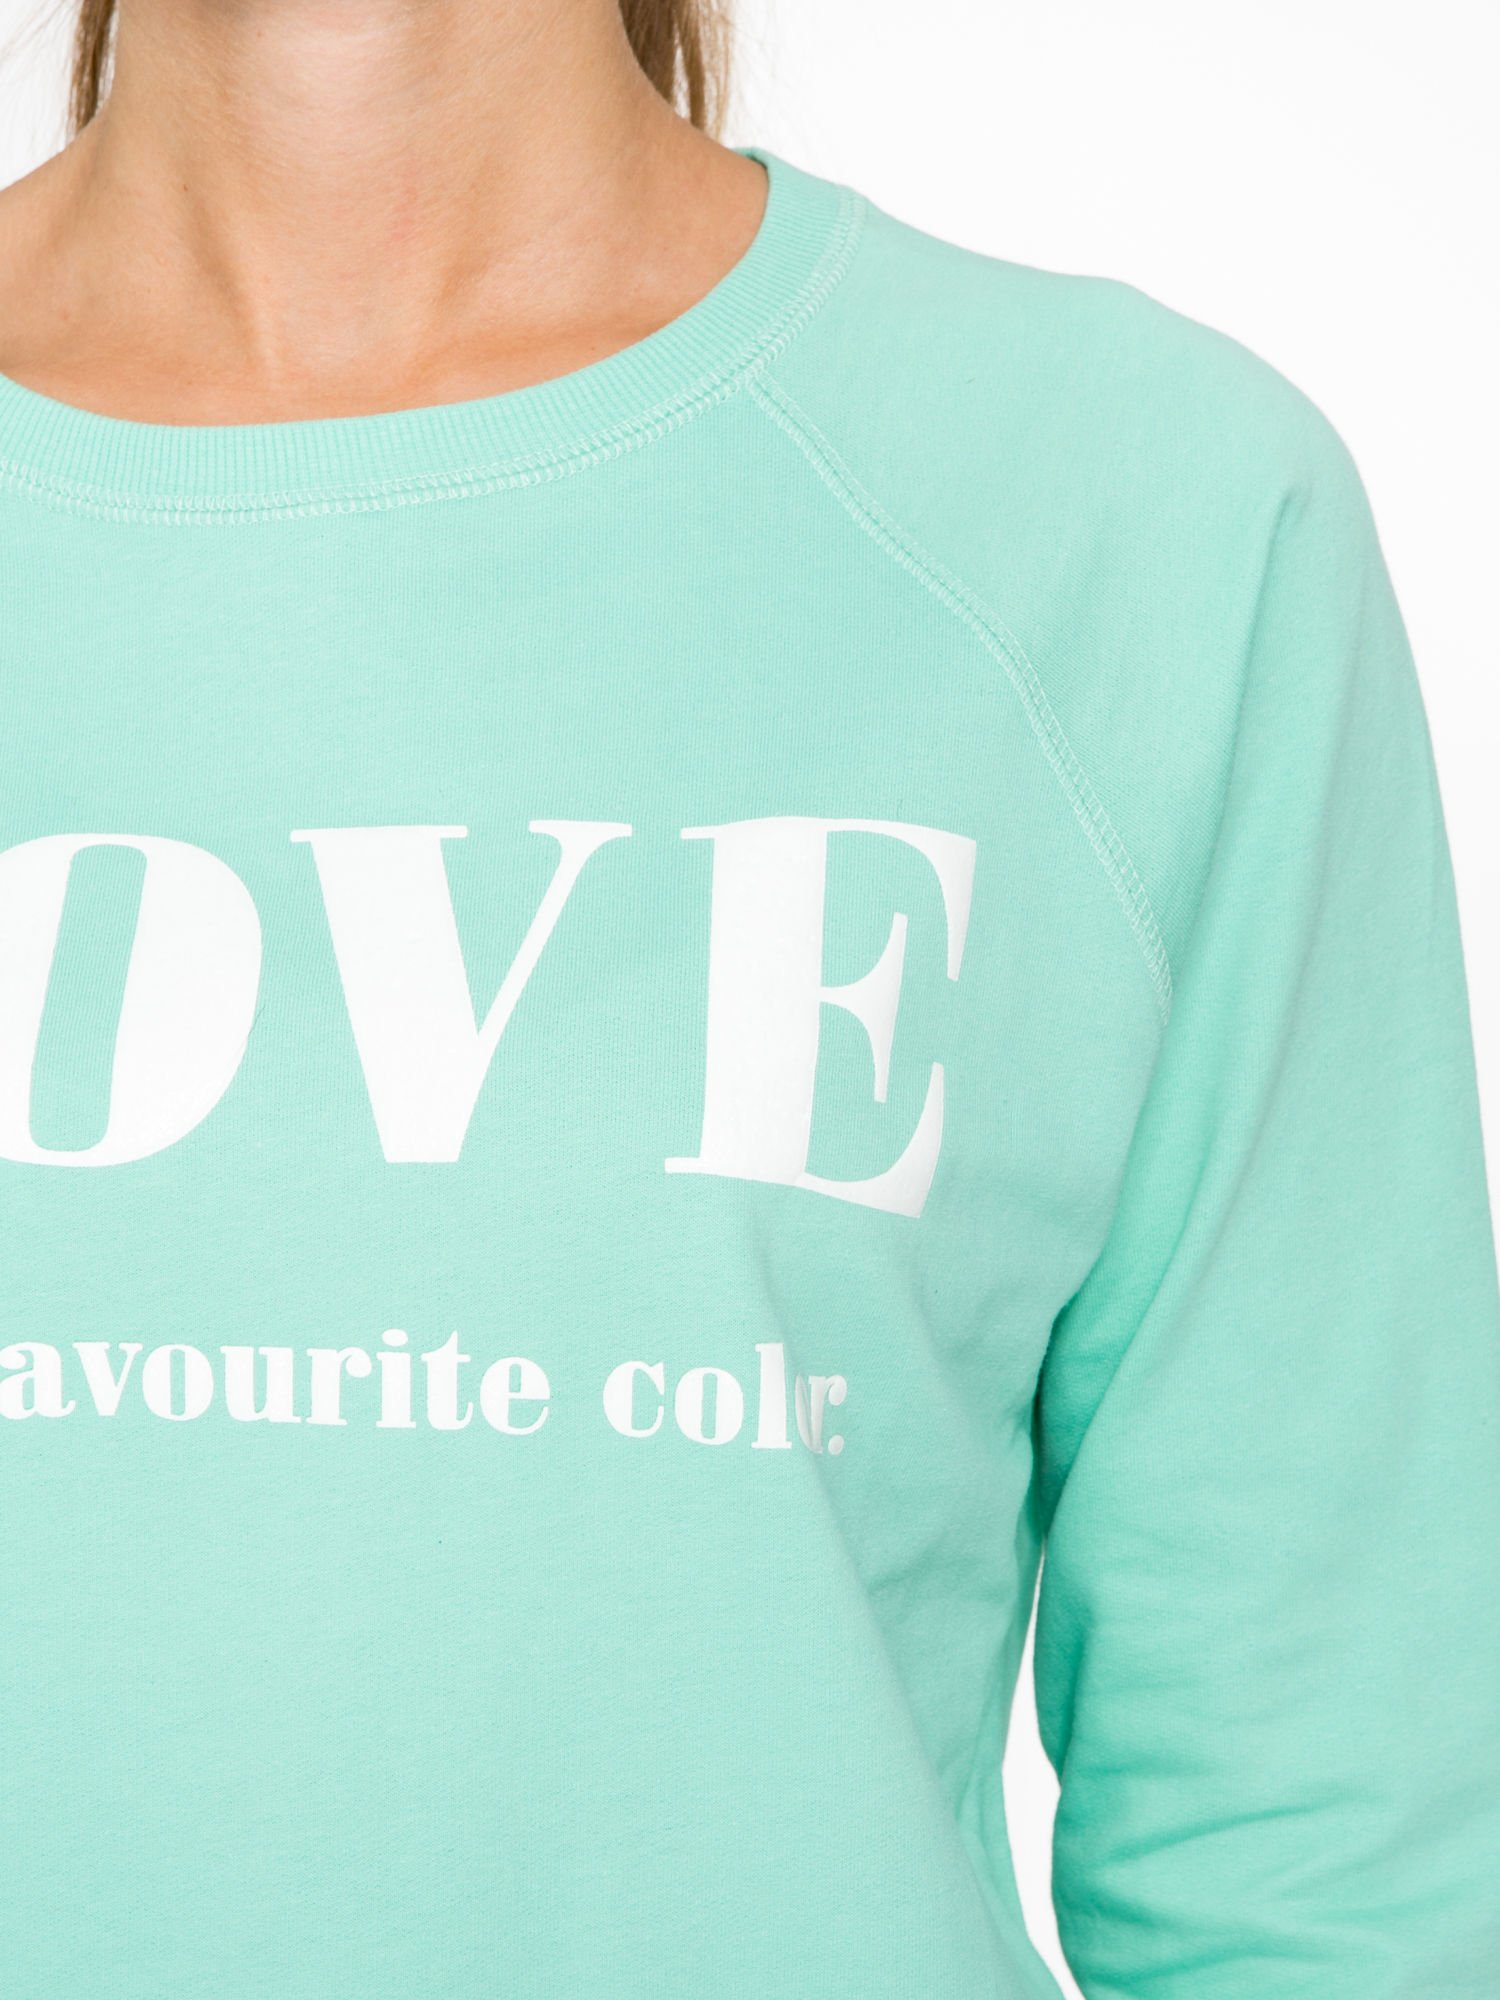 Jasnoturkusowa bluza z nadrukiem LOVE IS MY FAVOURITE COLOUR                                  zdj.                                  6